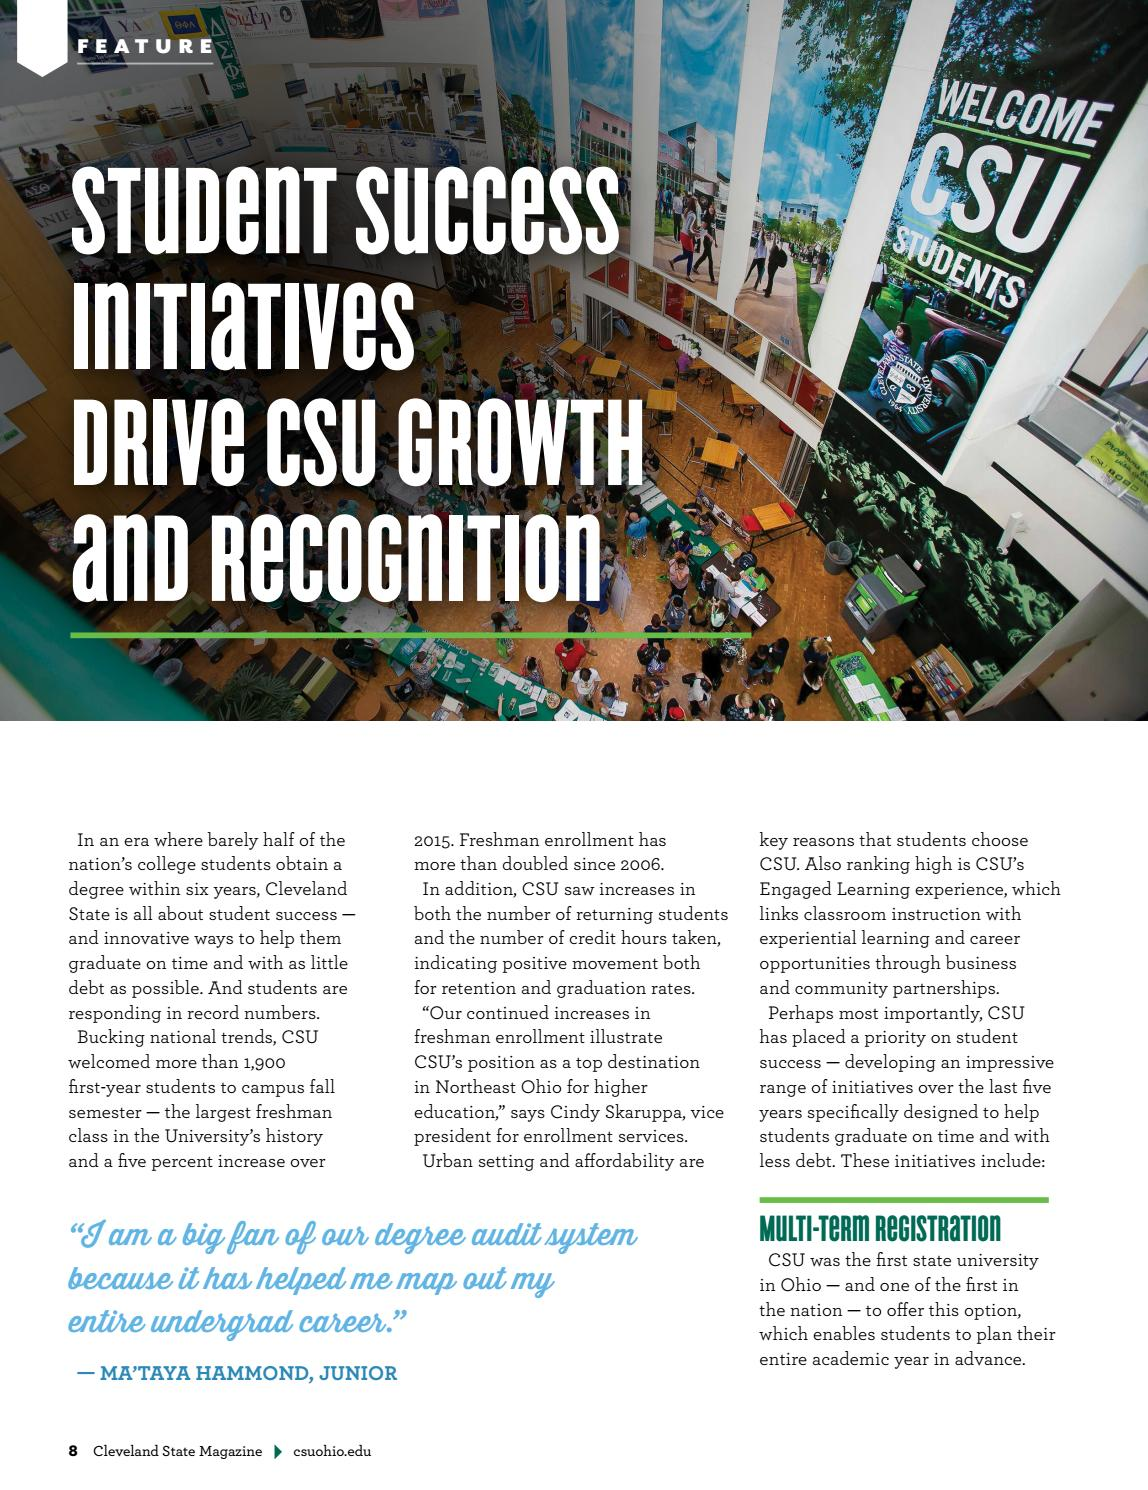 Cleveland State Magazine - Fall 2016/Winter 2017 by Cleveland State on